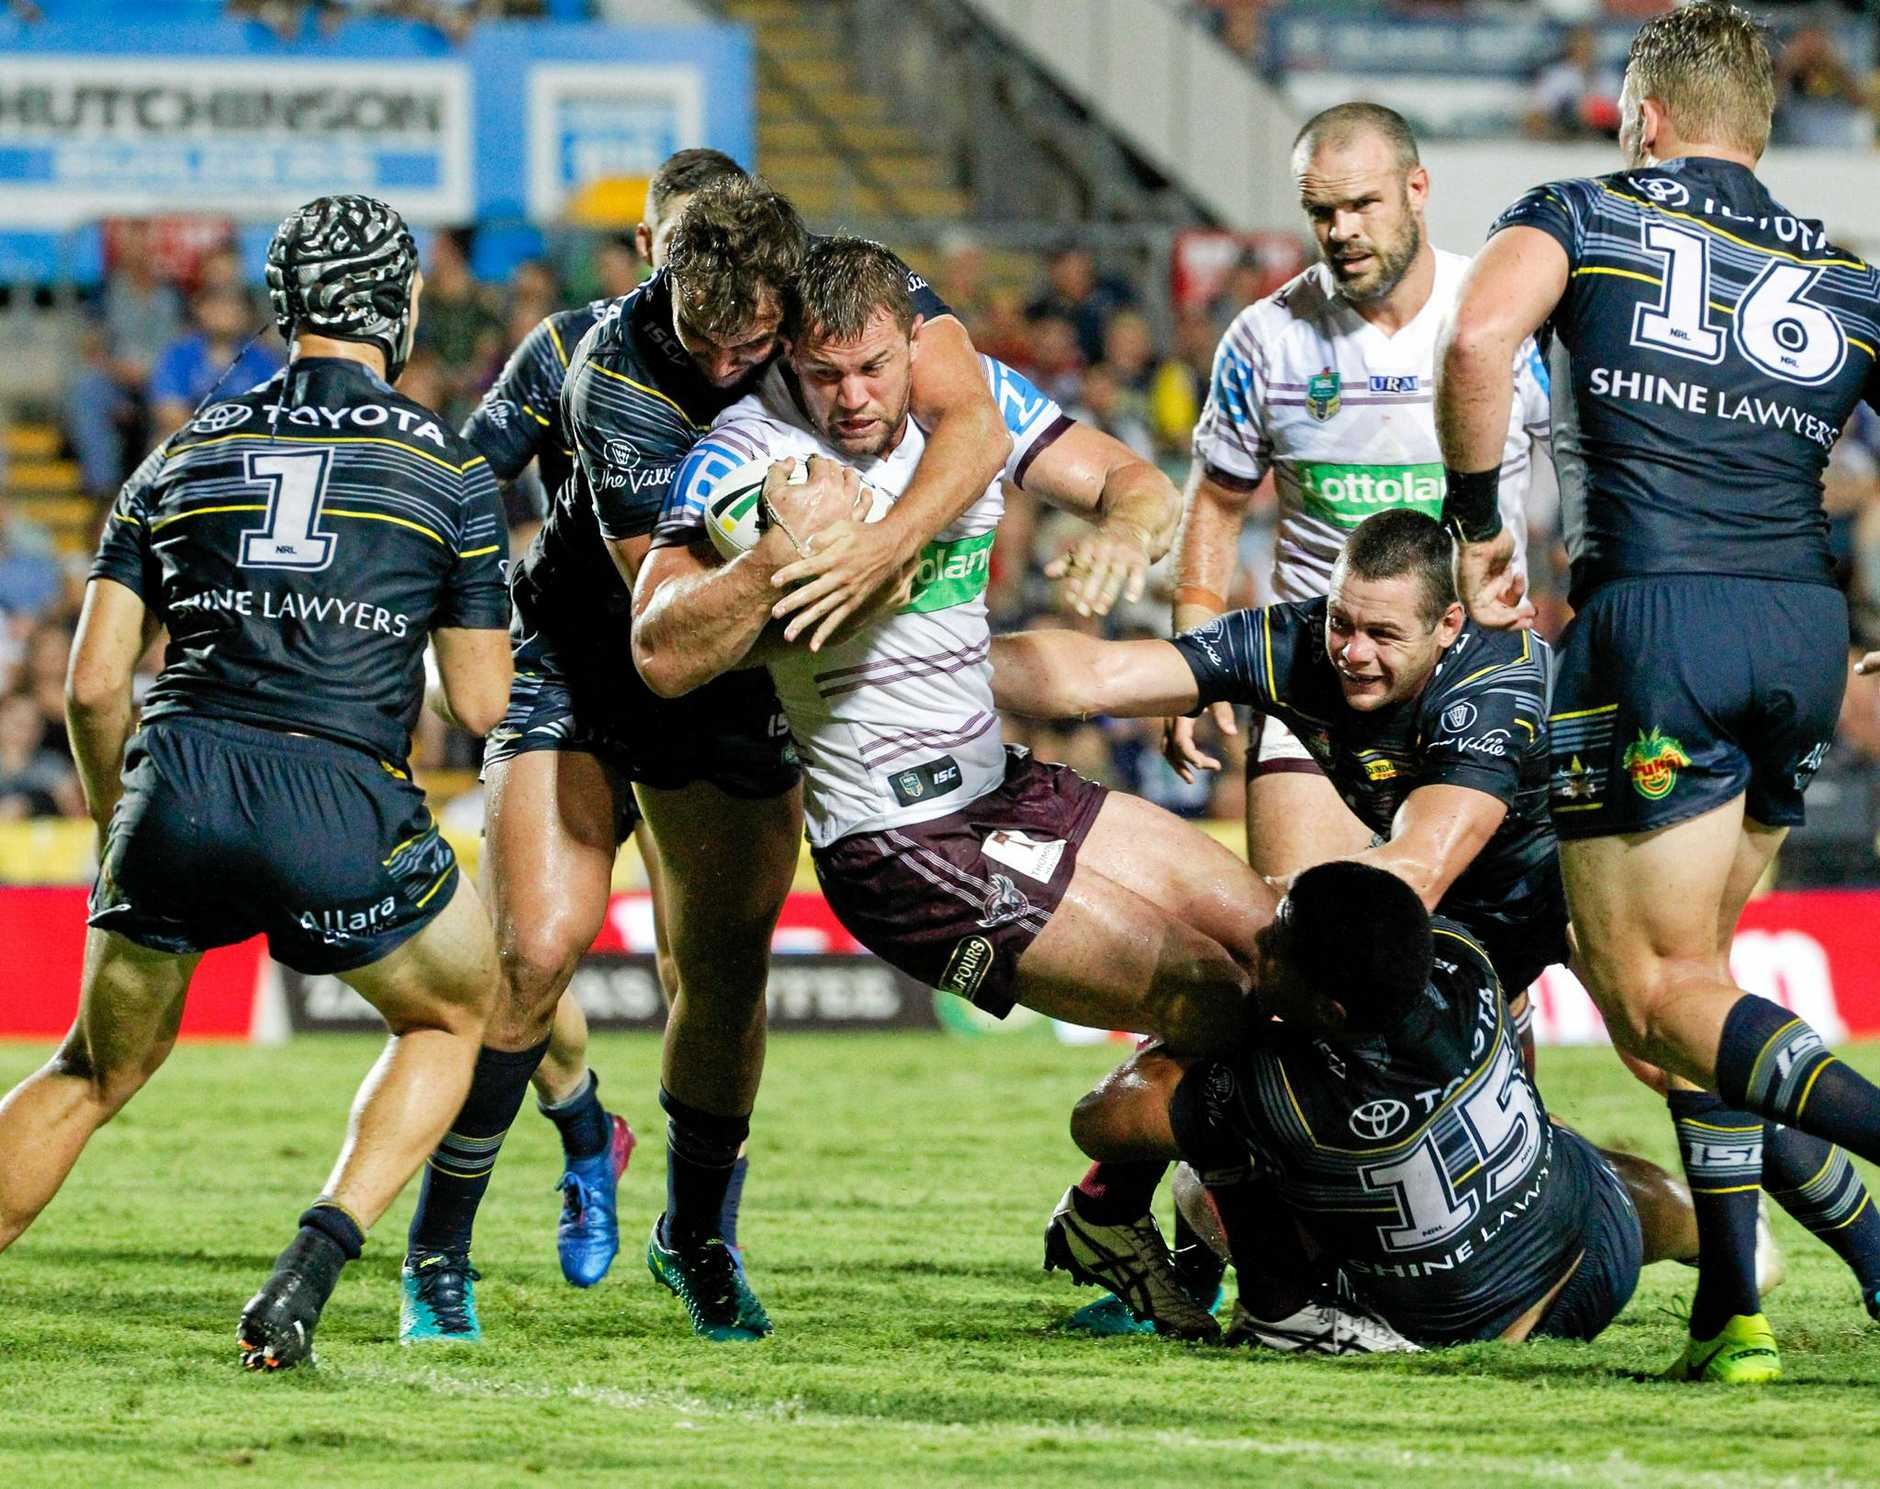 Manly forward Brenton Lawrence heads for the tryline as Cowboys defence tries to hold him back.